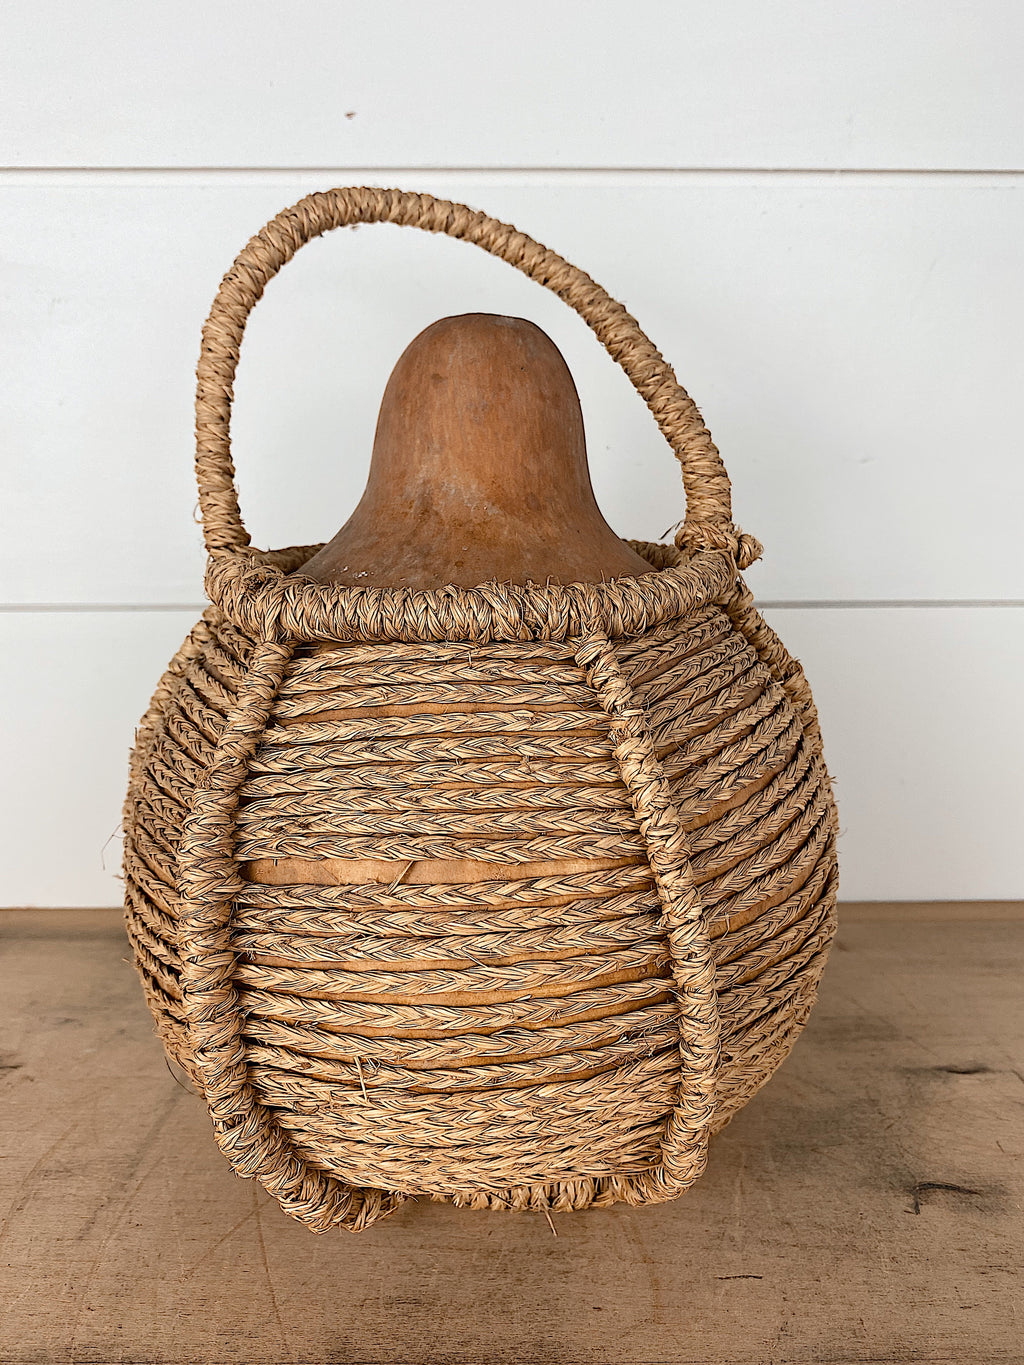 Dried Gourd in a Basket